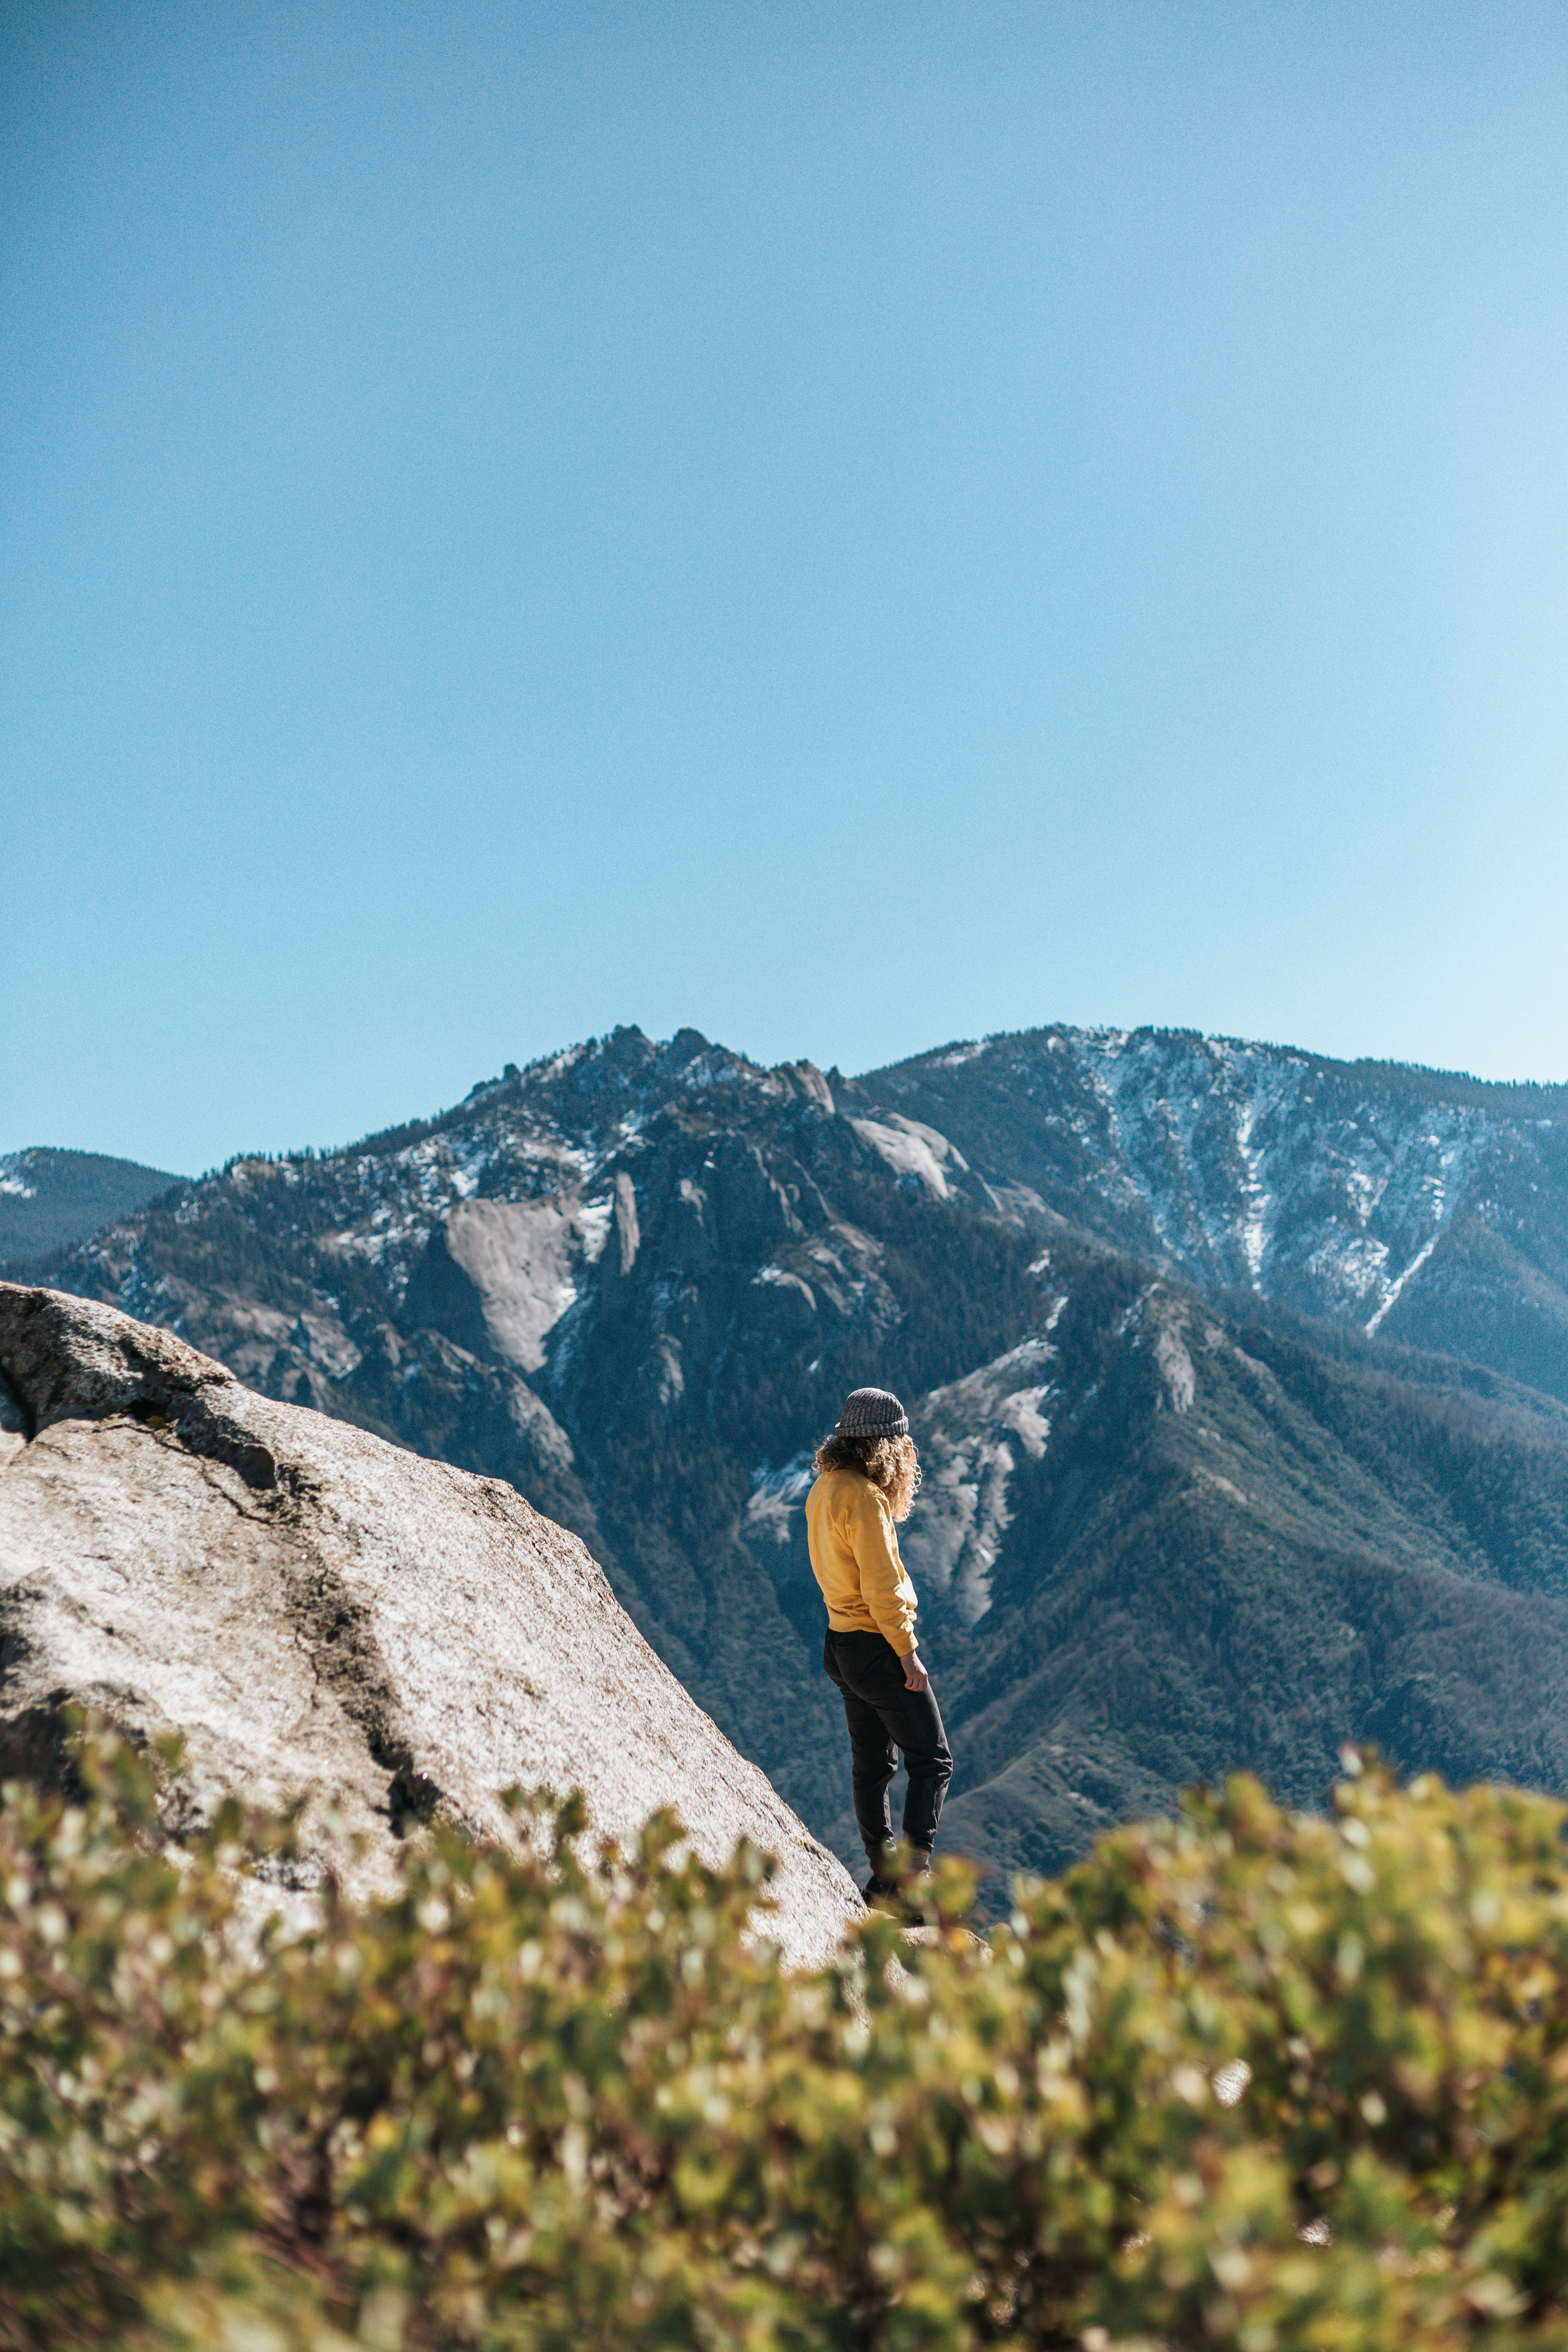 woman in yellow sweatshirt and black pants standing near cliff under blue sky during daytime